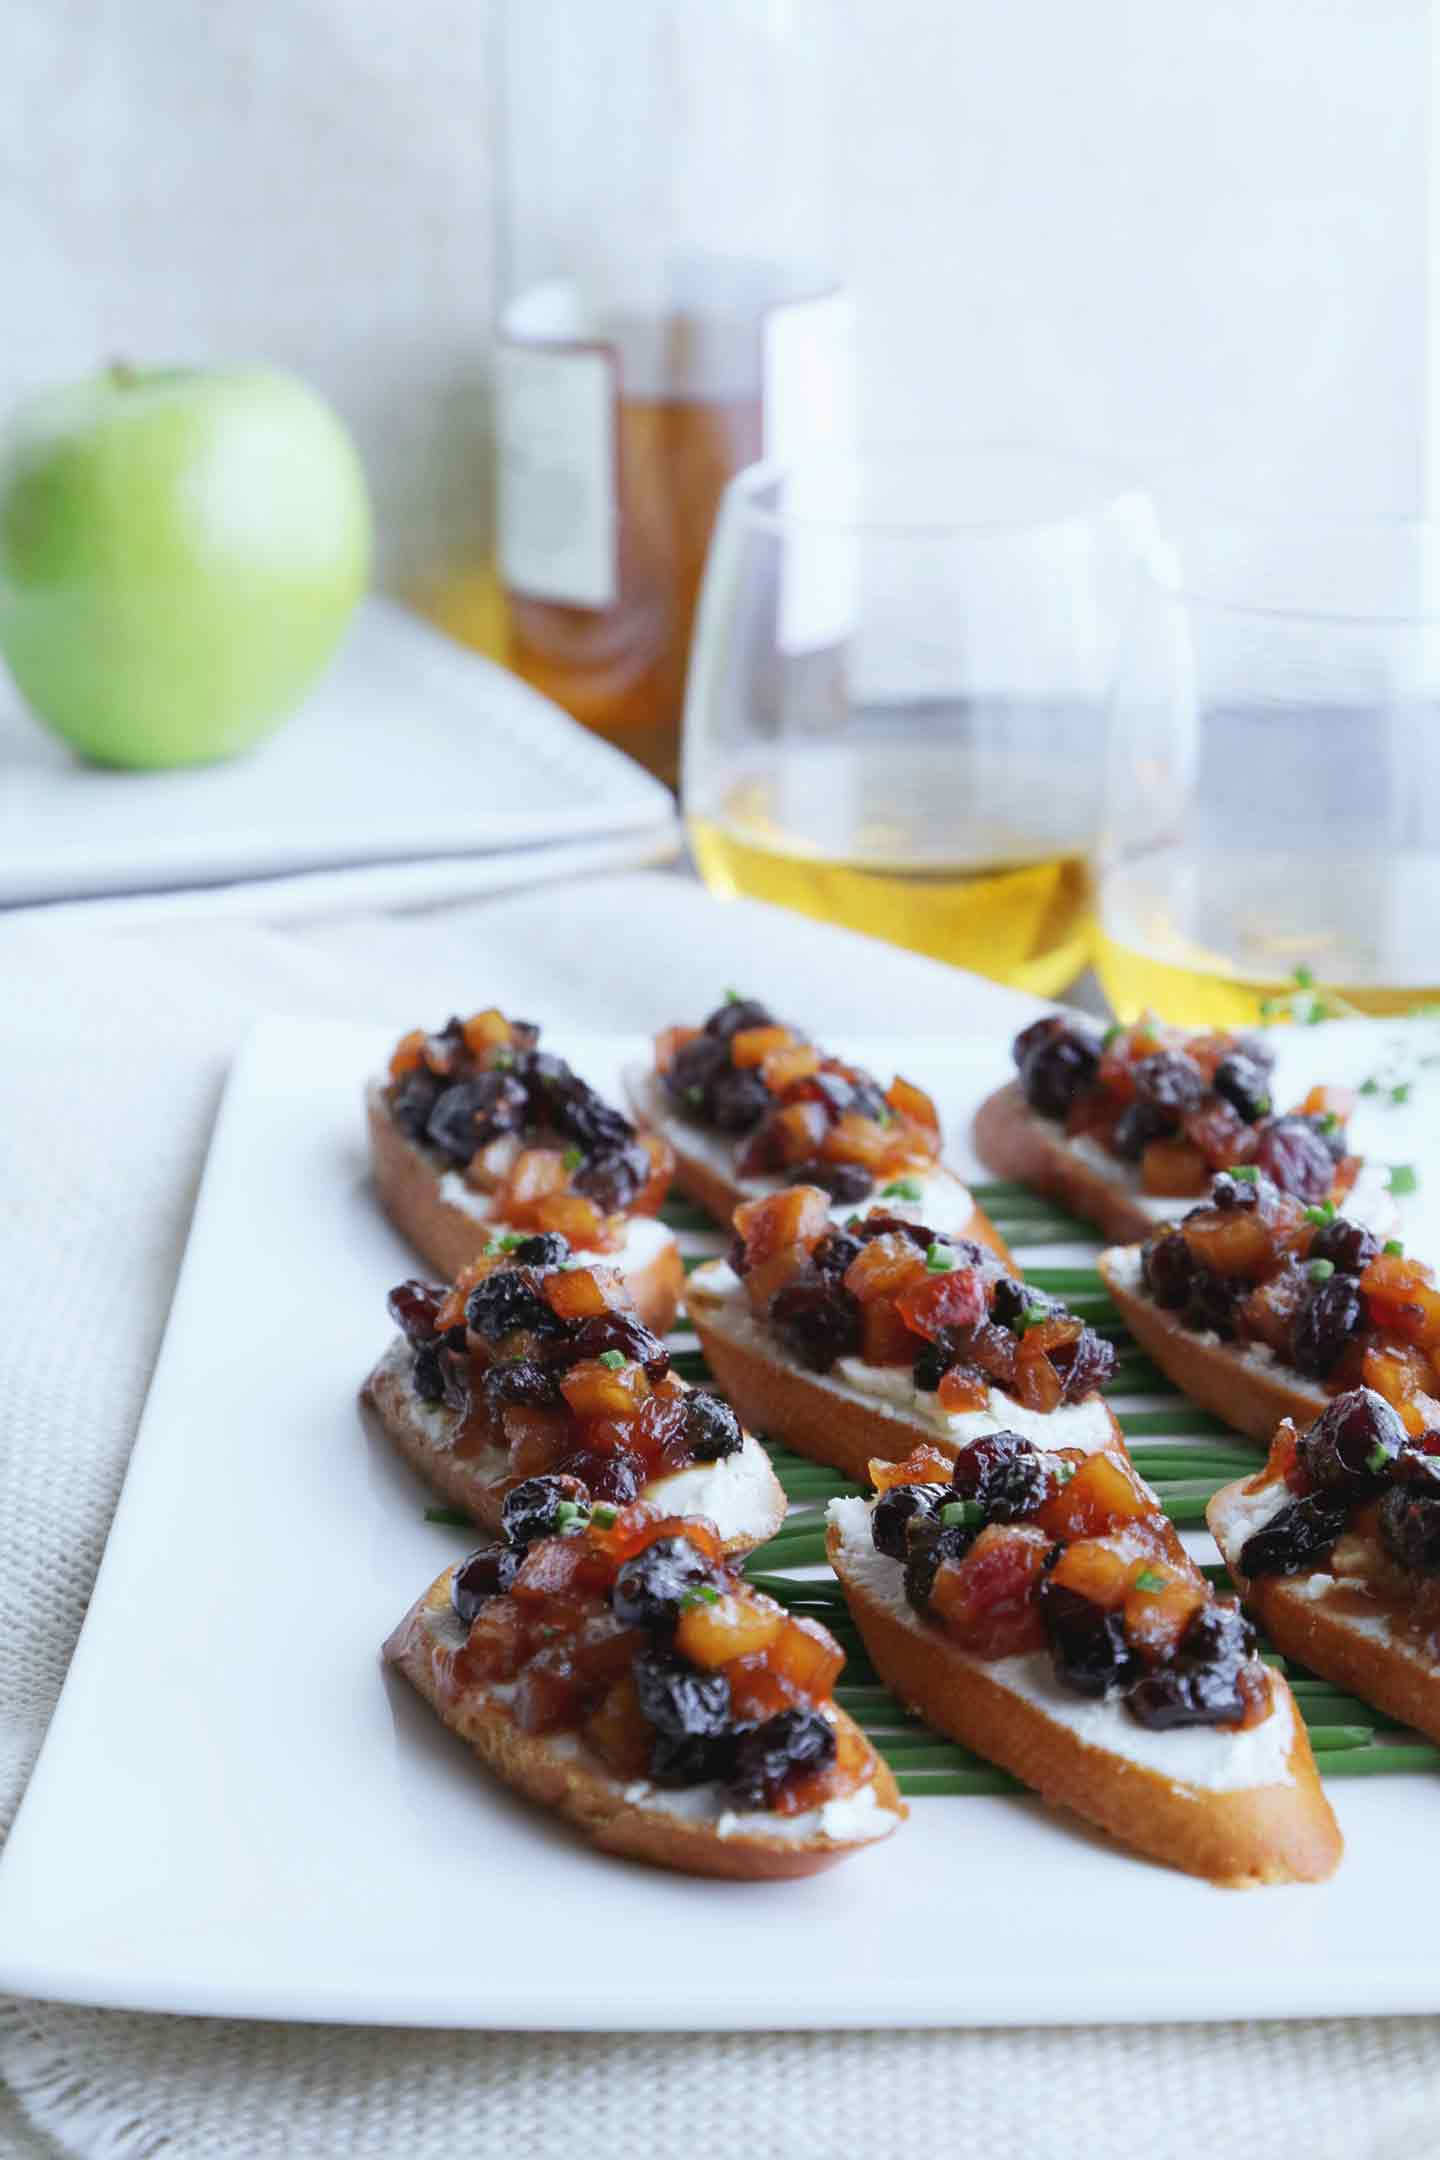 Apple Chutney Bruschetta line a white plate, served with glasses of white wine.